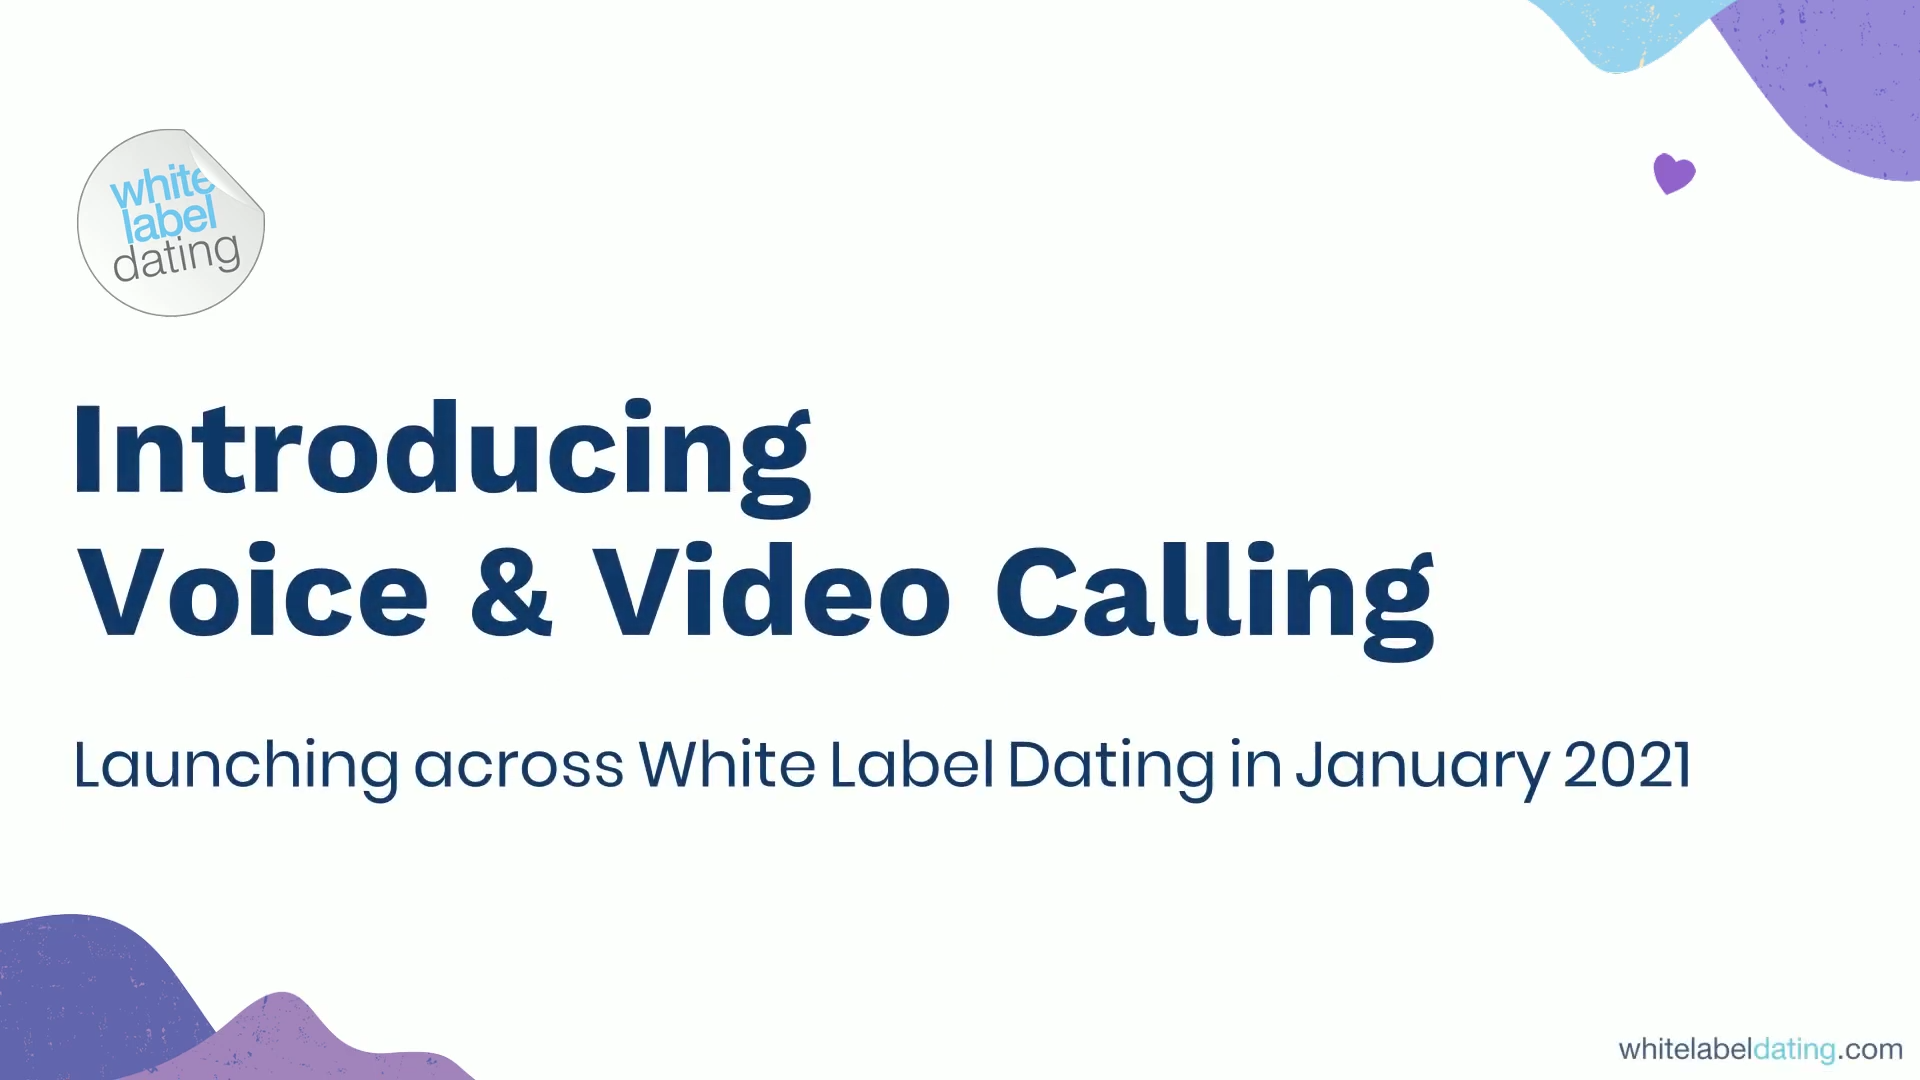 White Label Dating to Introduce Voice and Video Calling This Month!